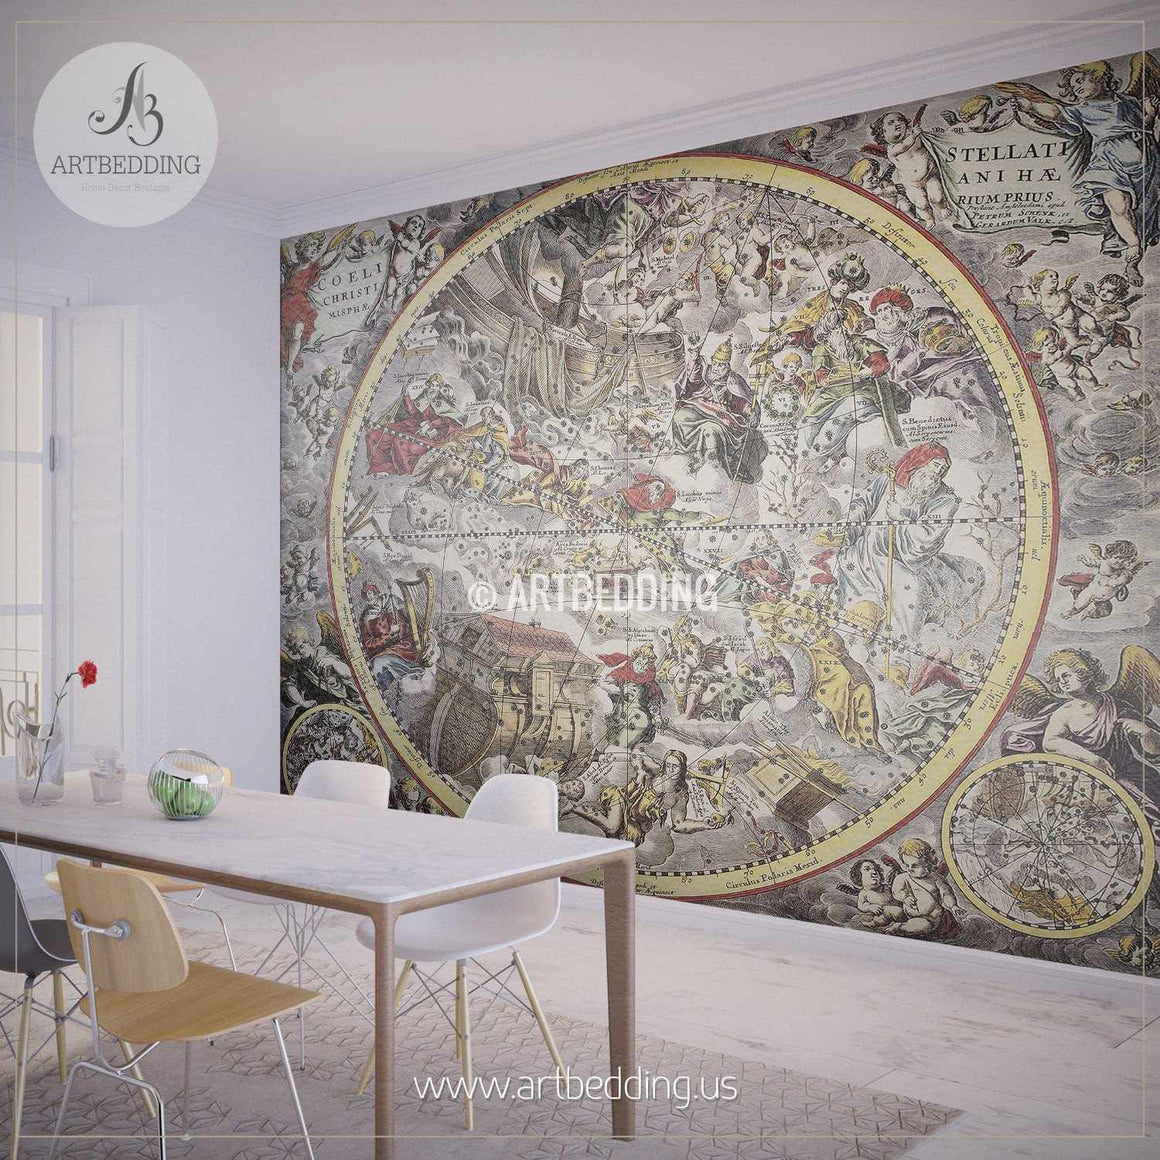 Old Representation of Christian Celestial Hemisphere (1660) Wall Mural, Self Adhesive Peel & Stick Photo Mural, Atlas wall mural, mural home decor wall mural